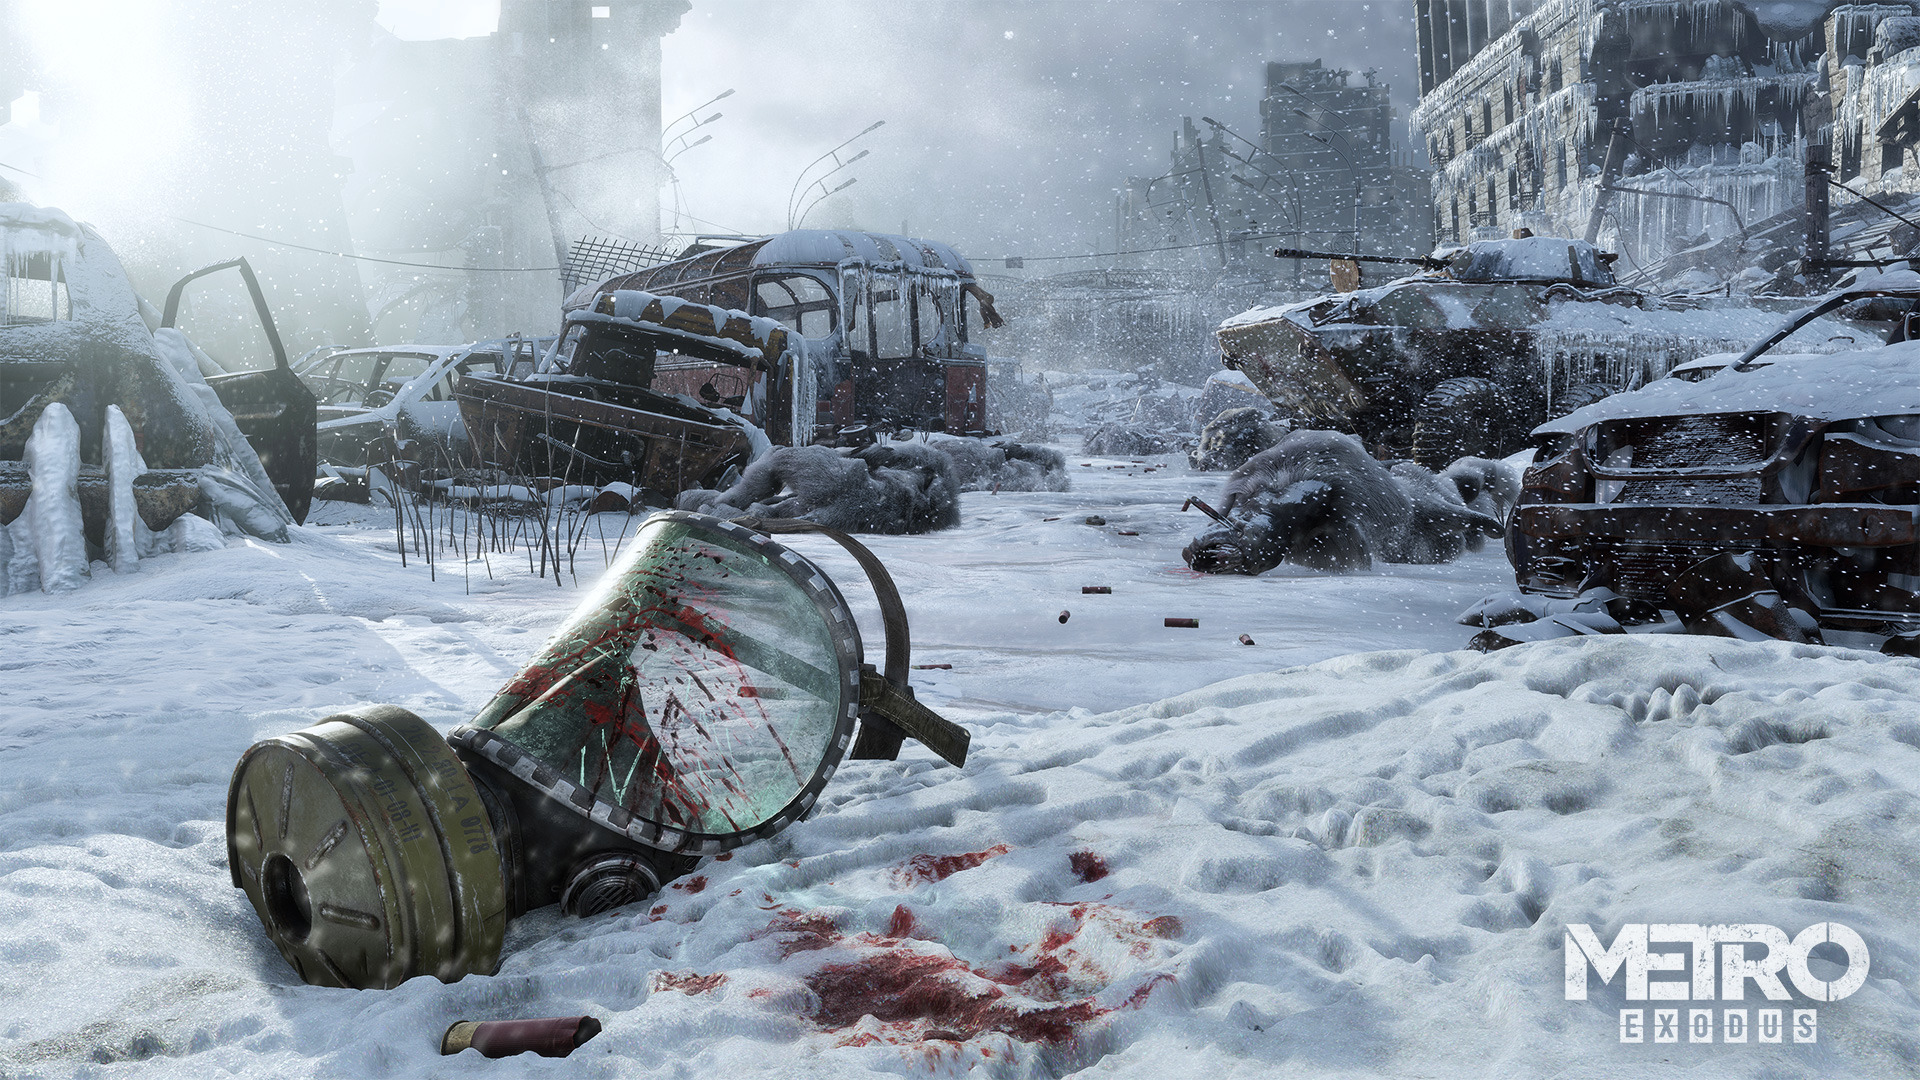 Metro Exodus Delayed, Now Slated For Q1 2019 Release